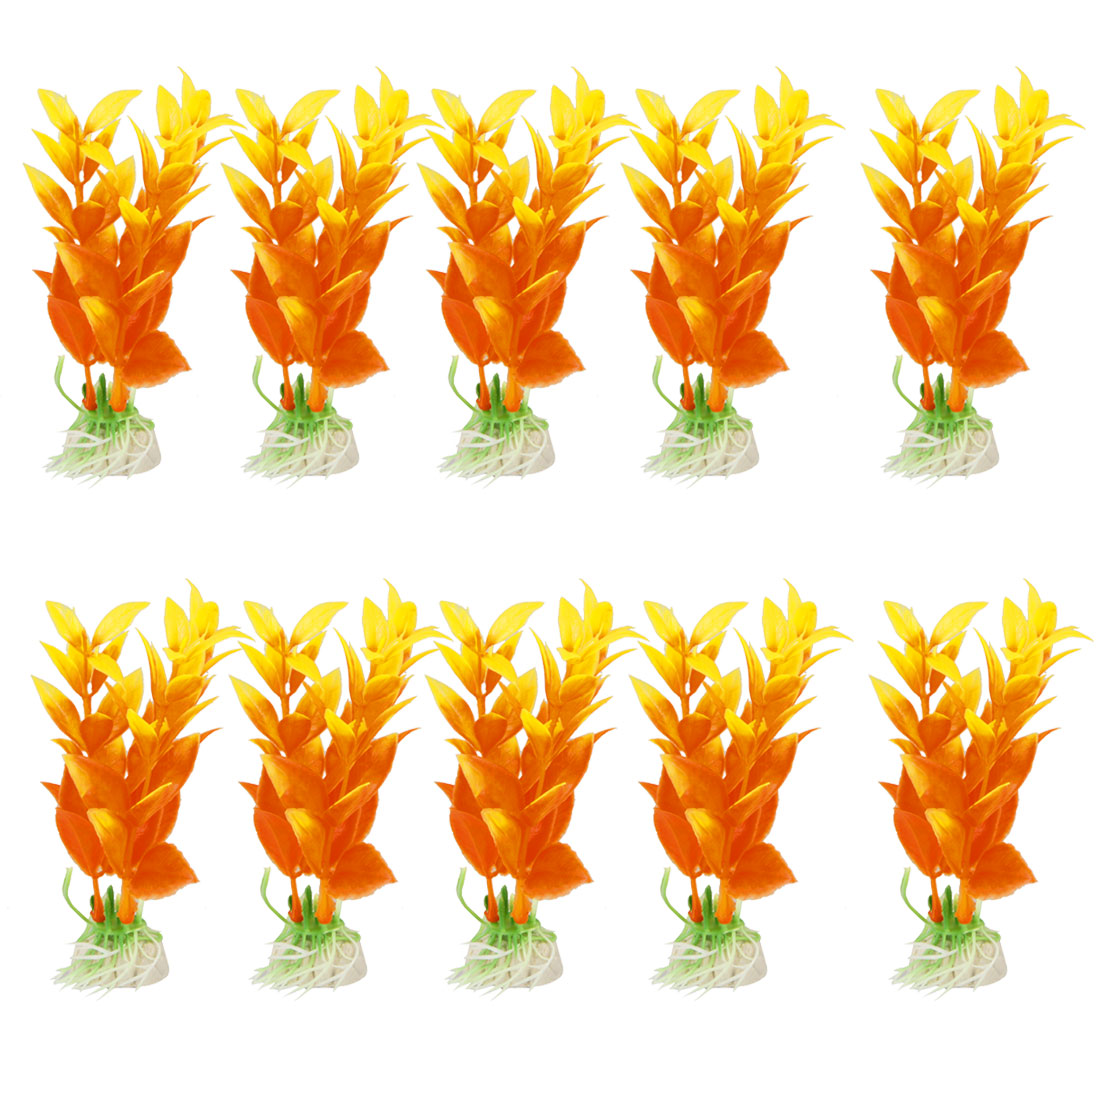 "10 Pcs 3.5"" High Orange Aquarium Aquascaping Simulation Aquatic Grass Decor"